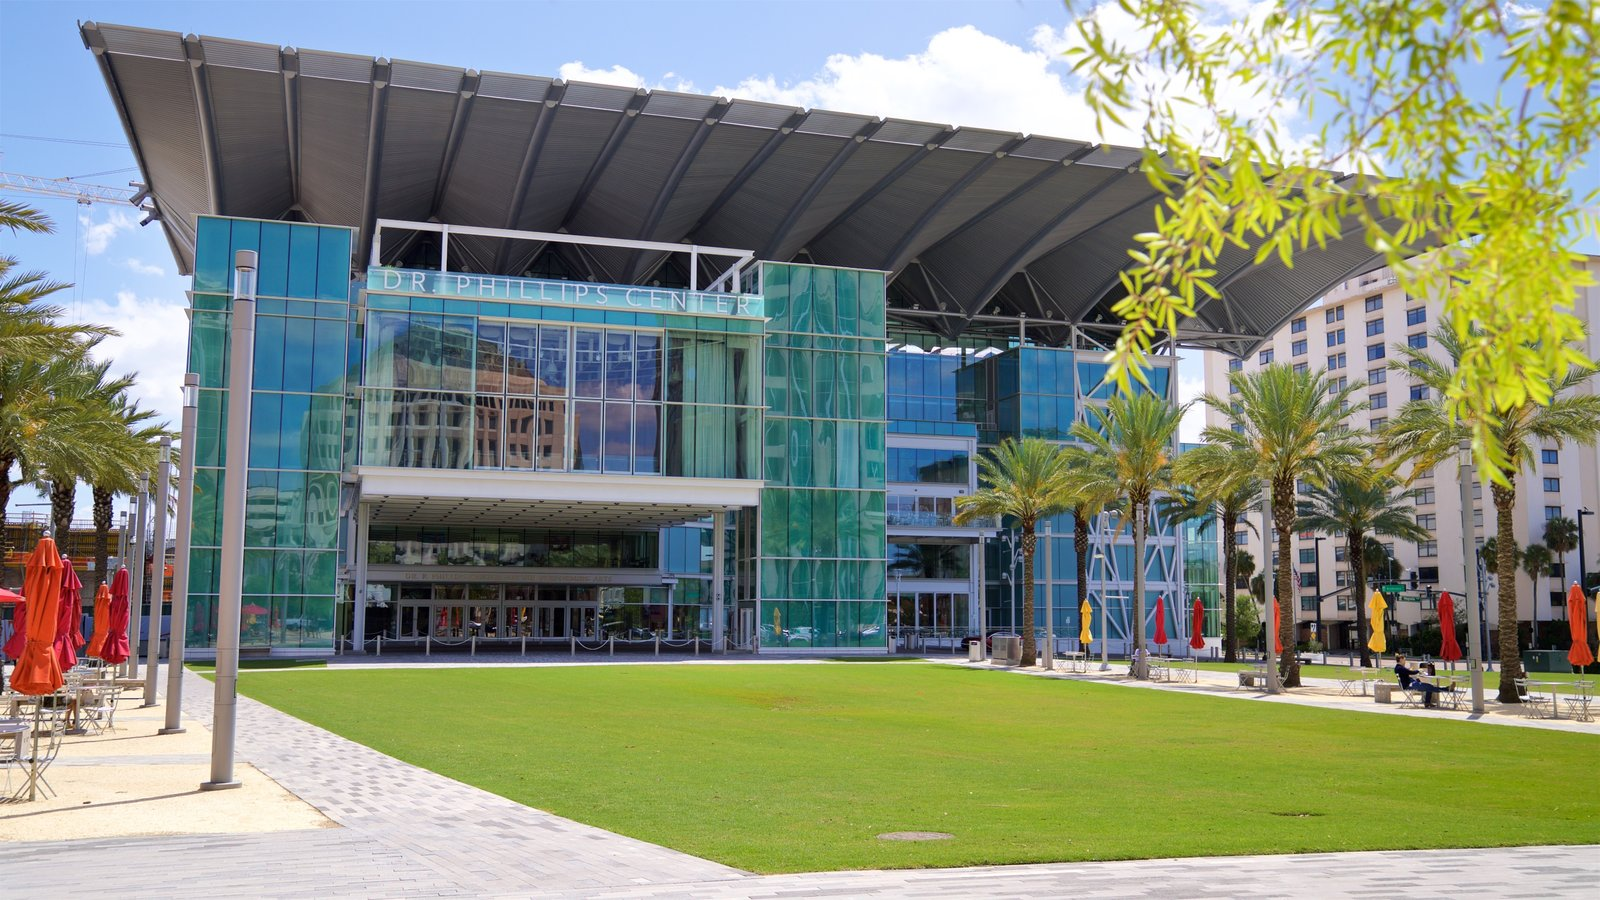 Dr. Phillips Center for the Performing Arts mostrando arquitectura moderna